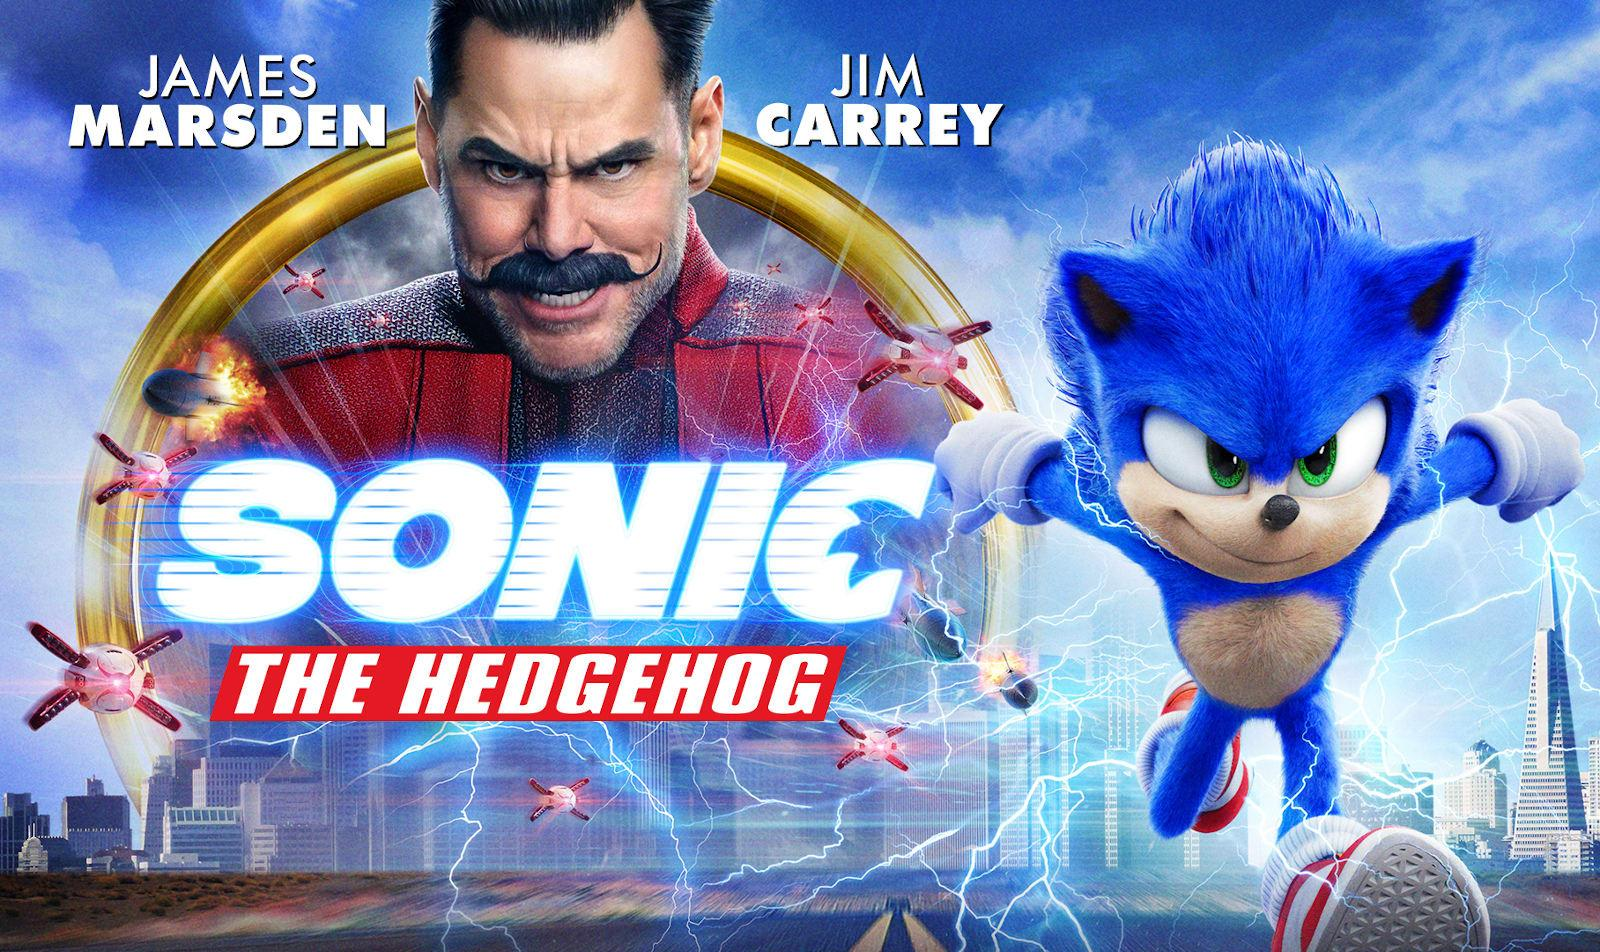 Sonic The Hedgehog Movie Gets An Early Digital Release On March